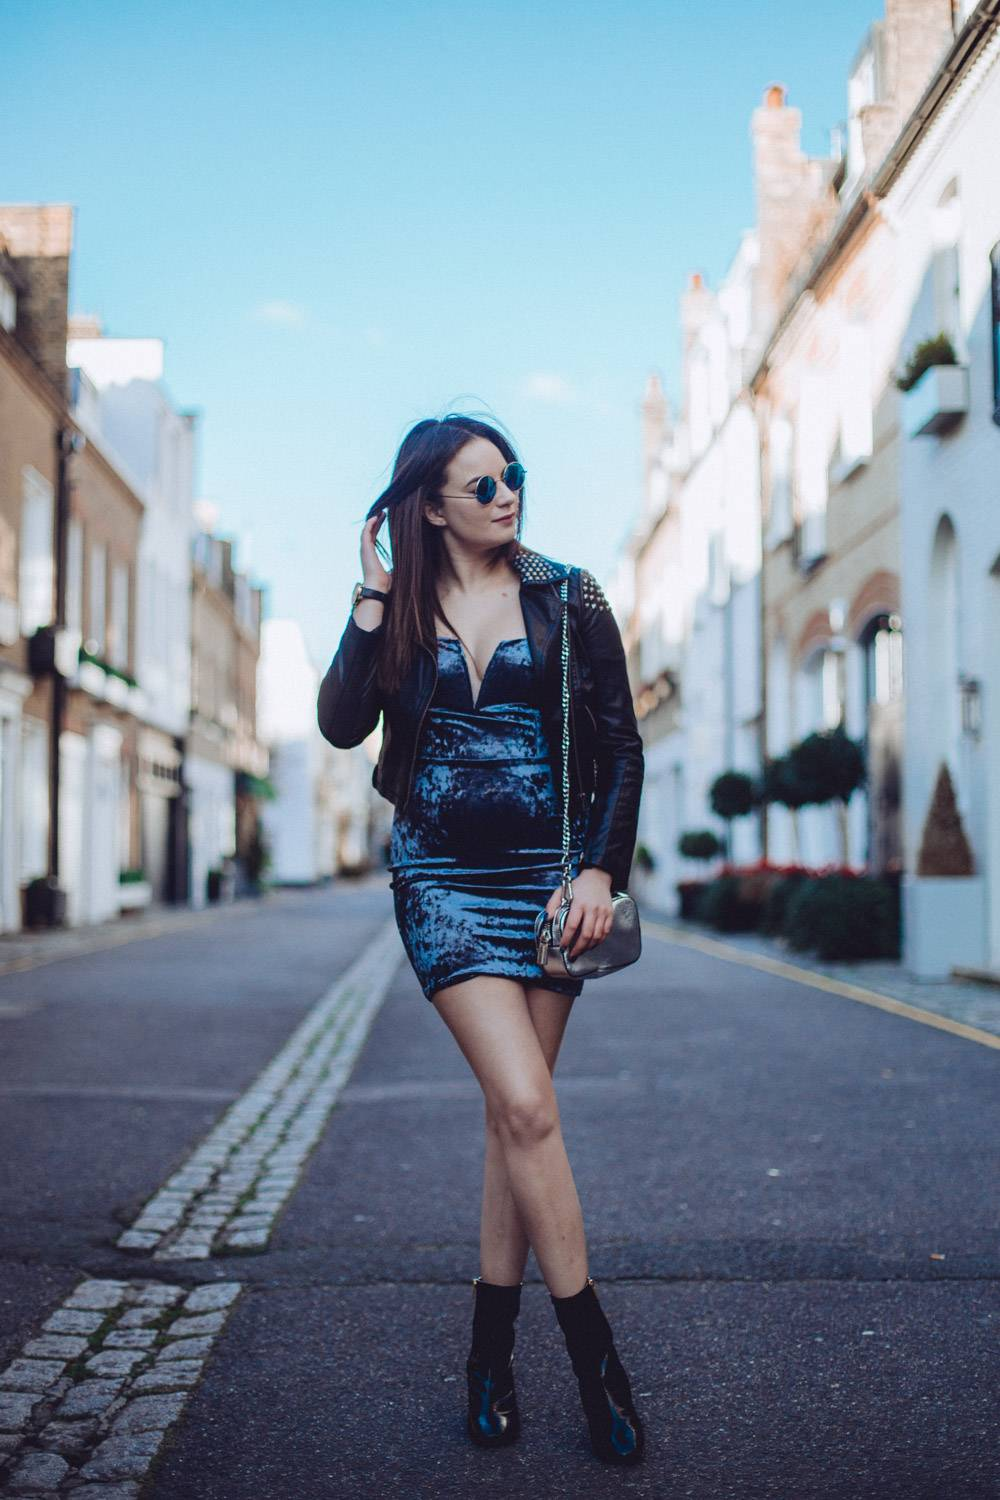 Crushed velvet London mews outfit